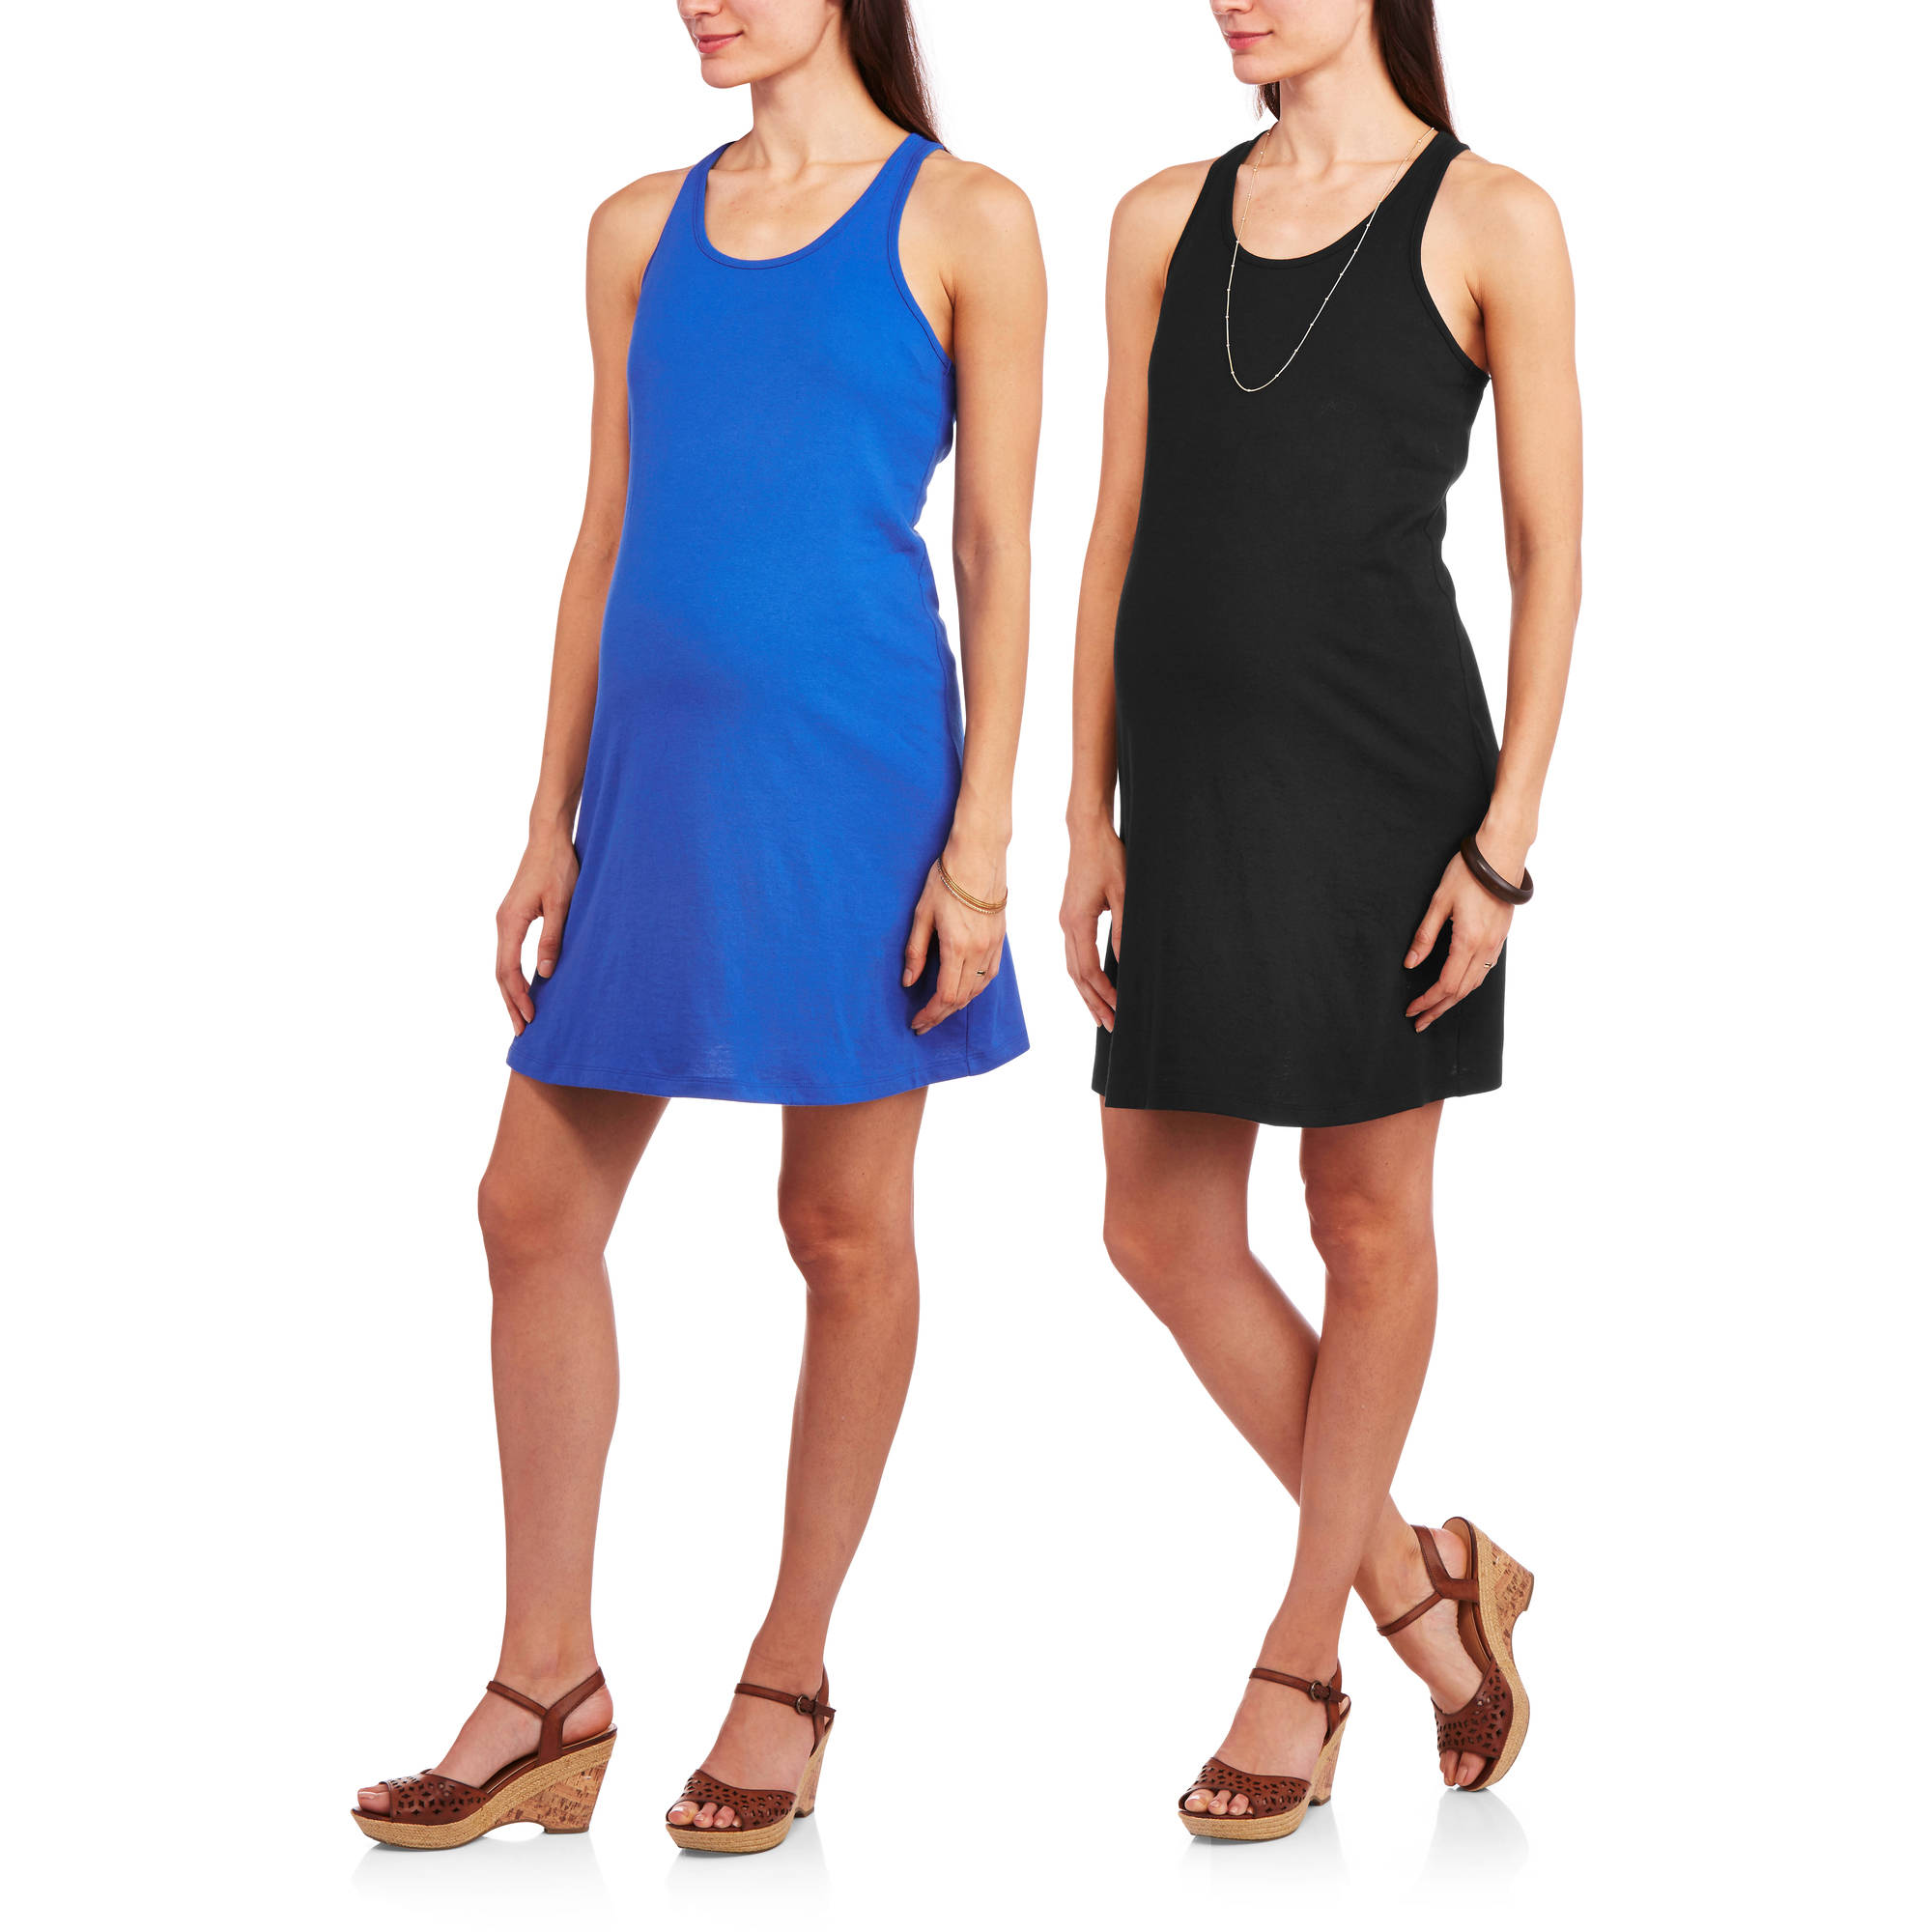 Faded Glory Maternity Racerback Tank Dress, 2-Pack